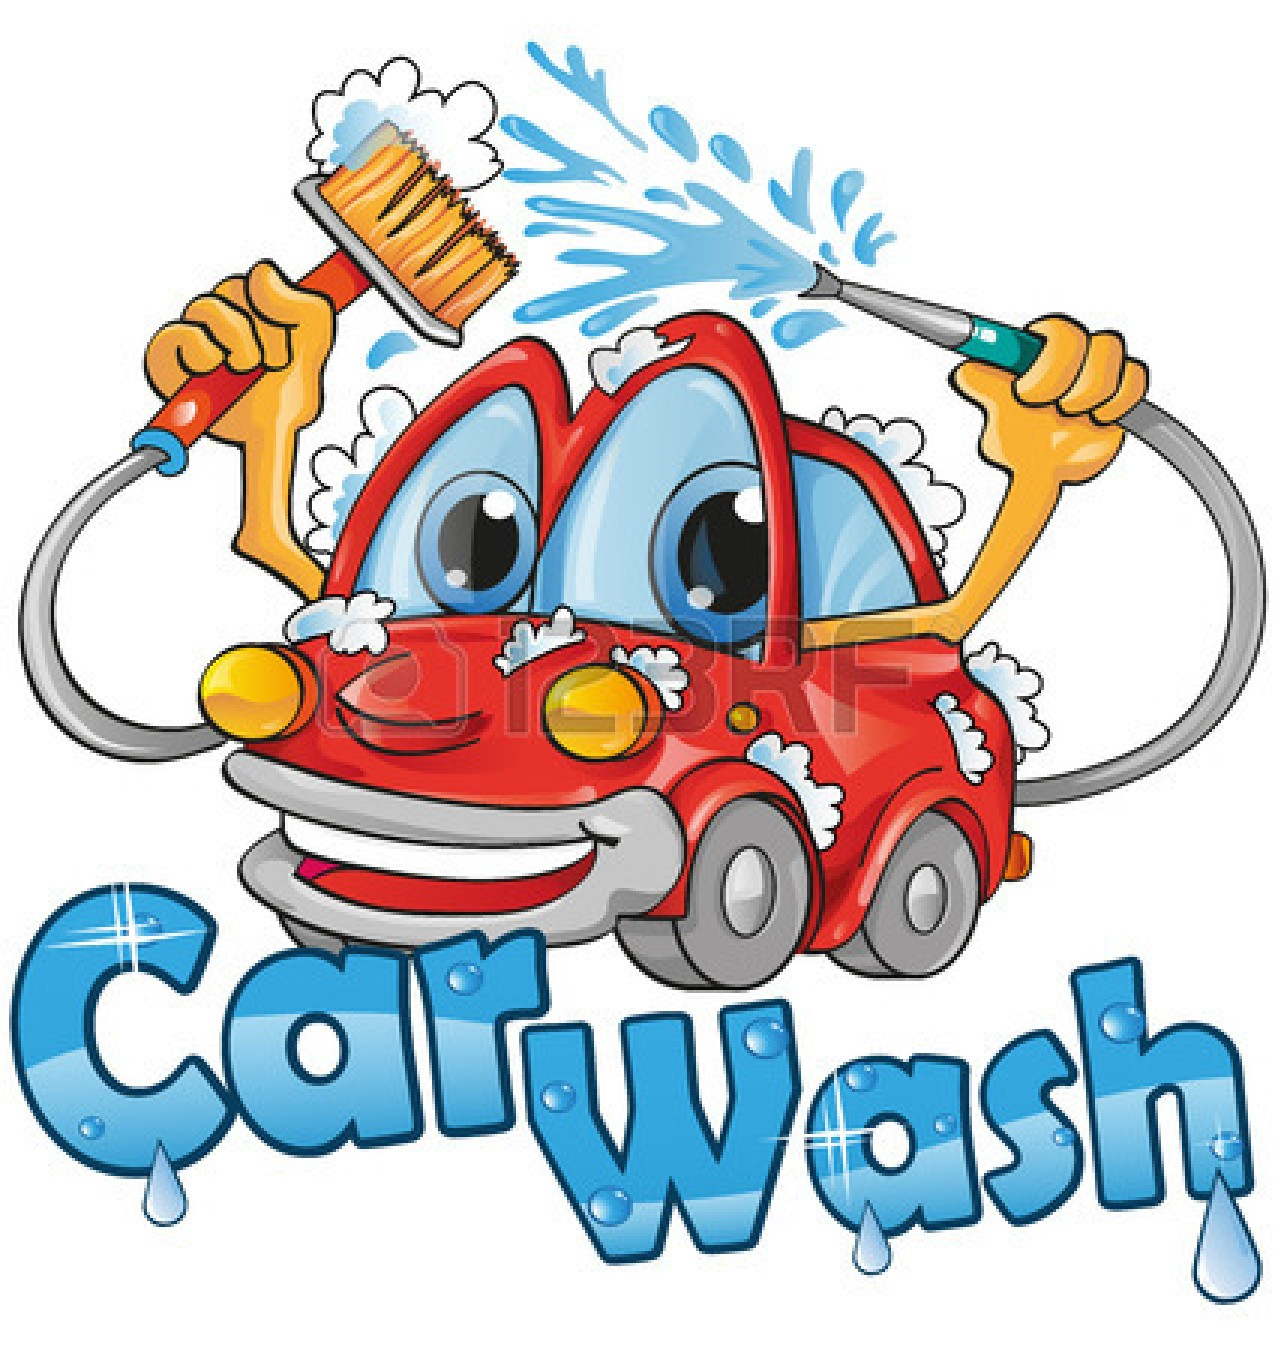 Car Wash Clip Art   Background Image Collection   B Id Com Server 12